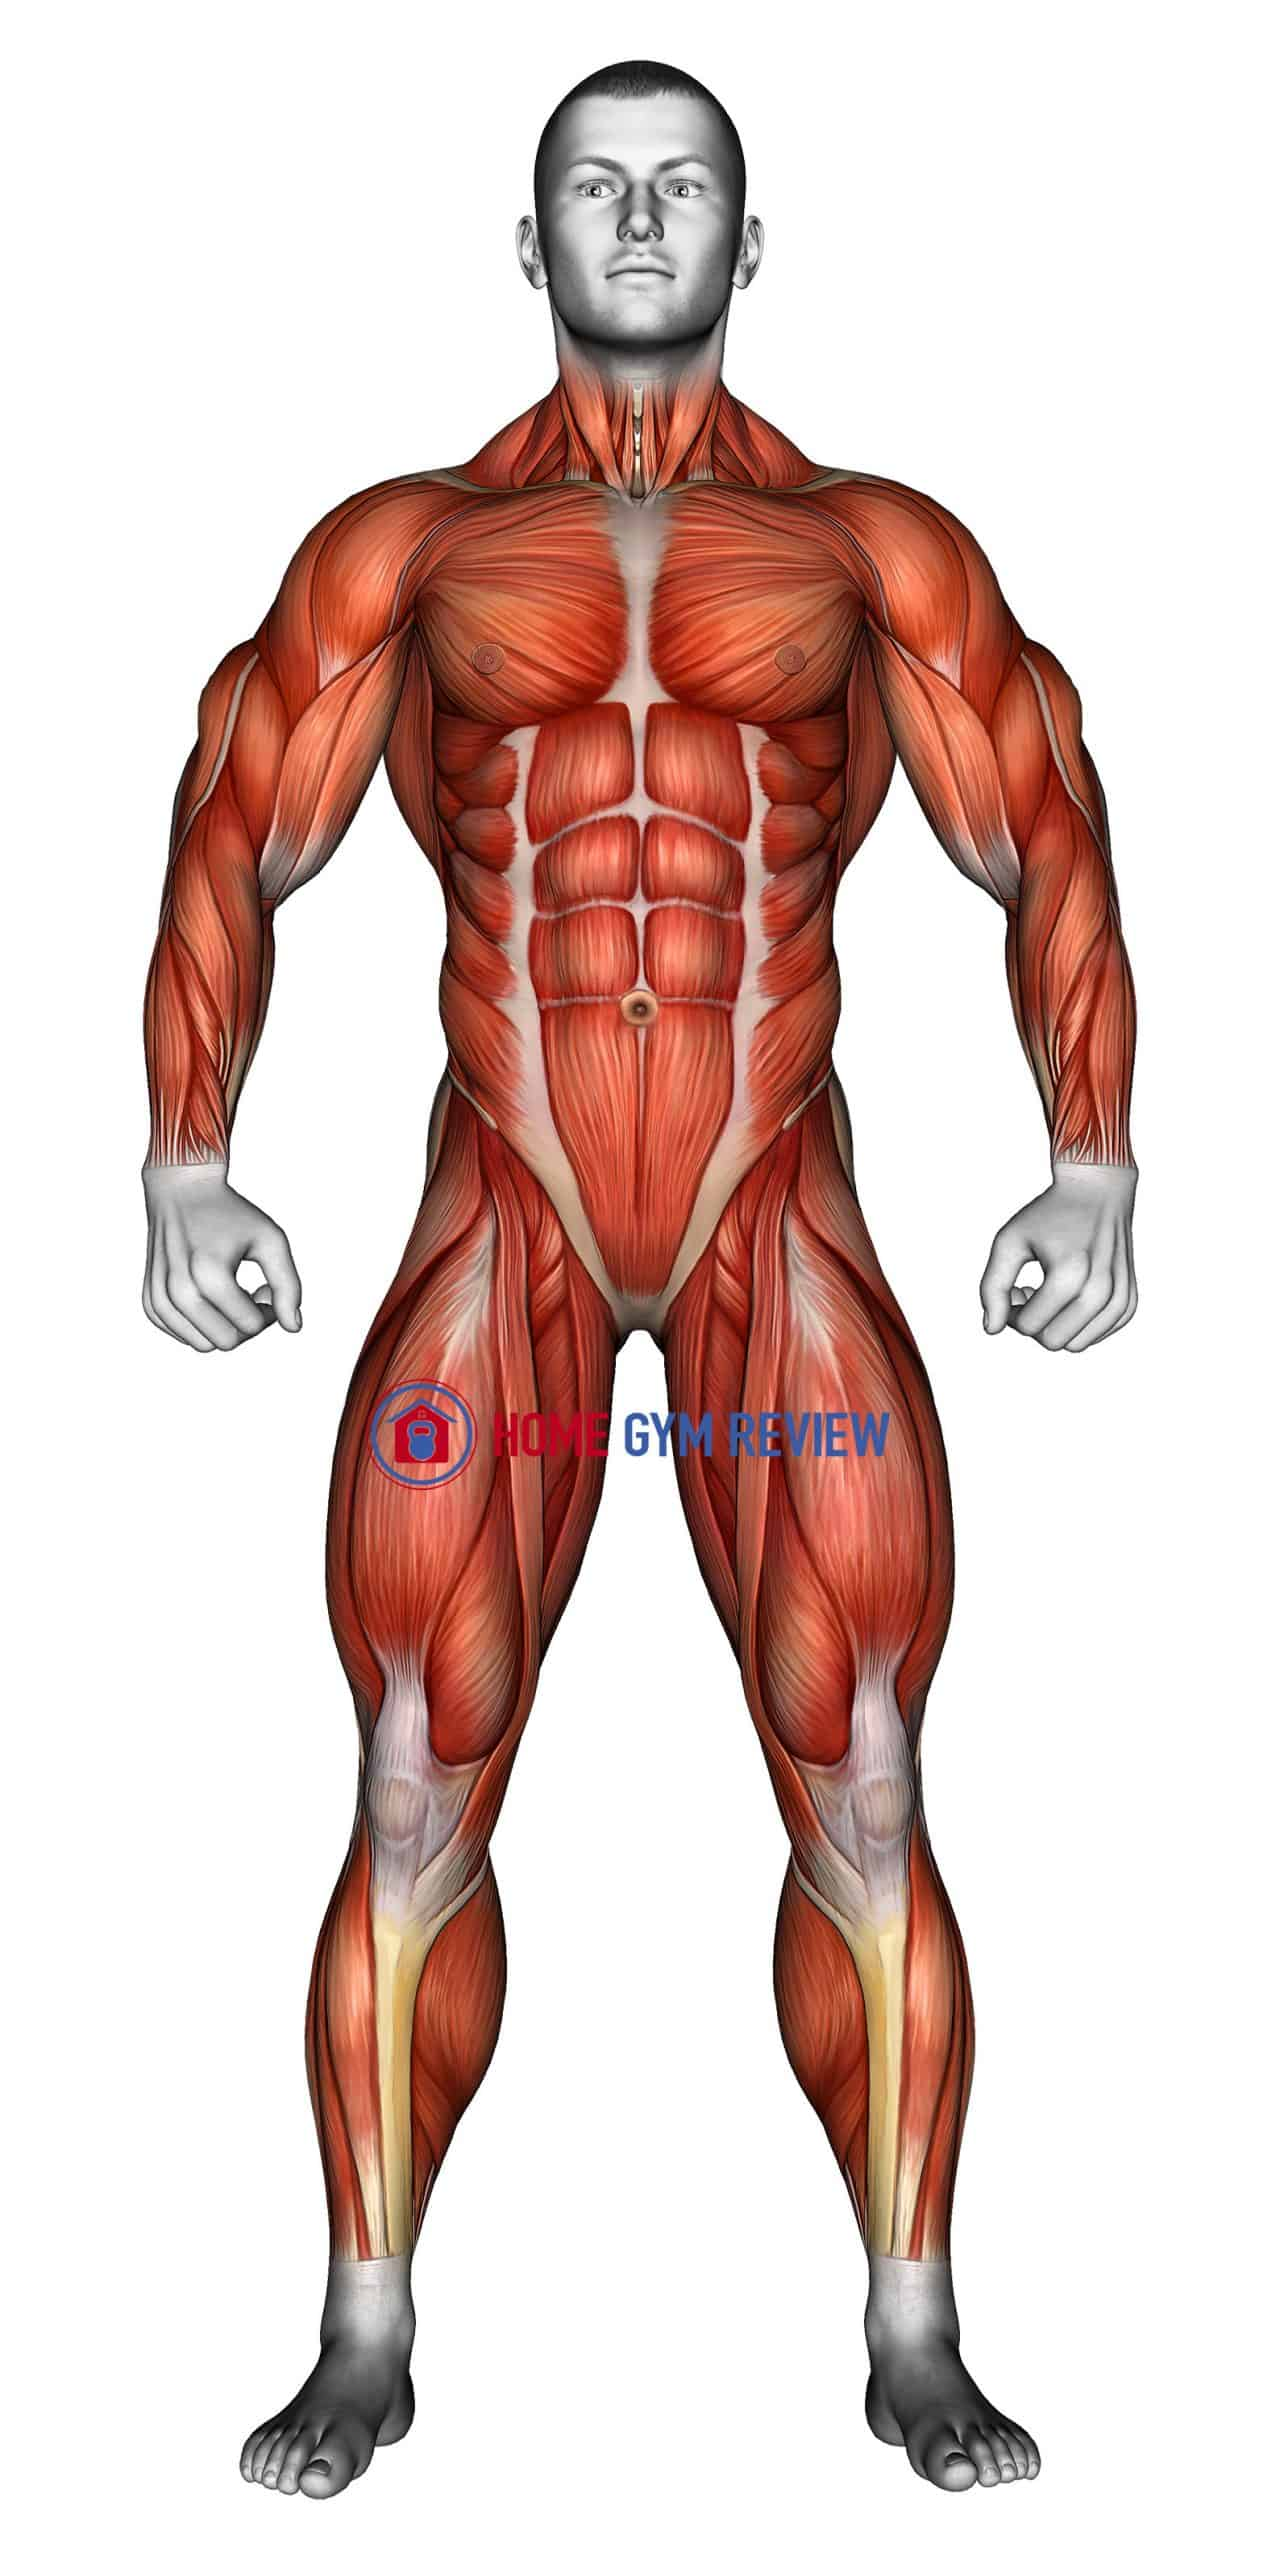 Body muscles. Front view